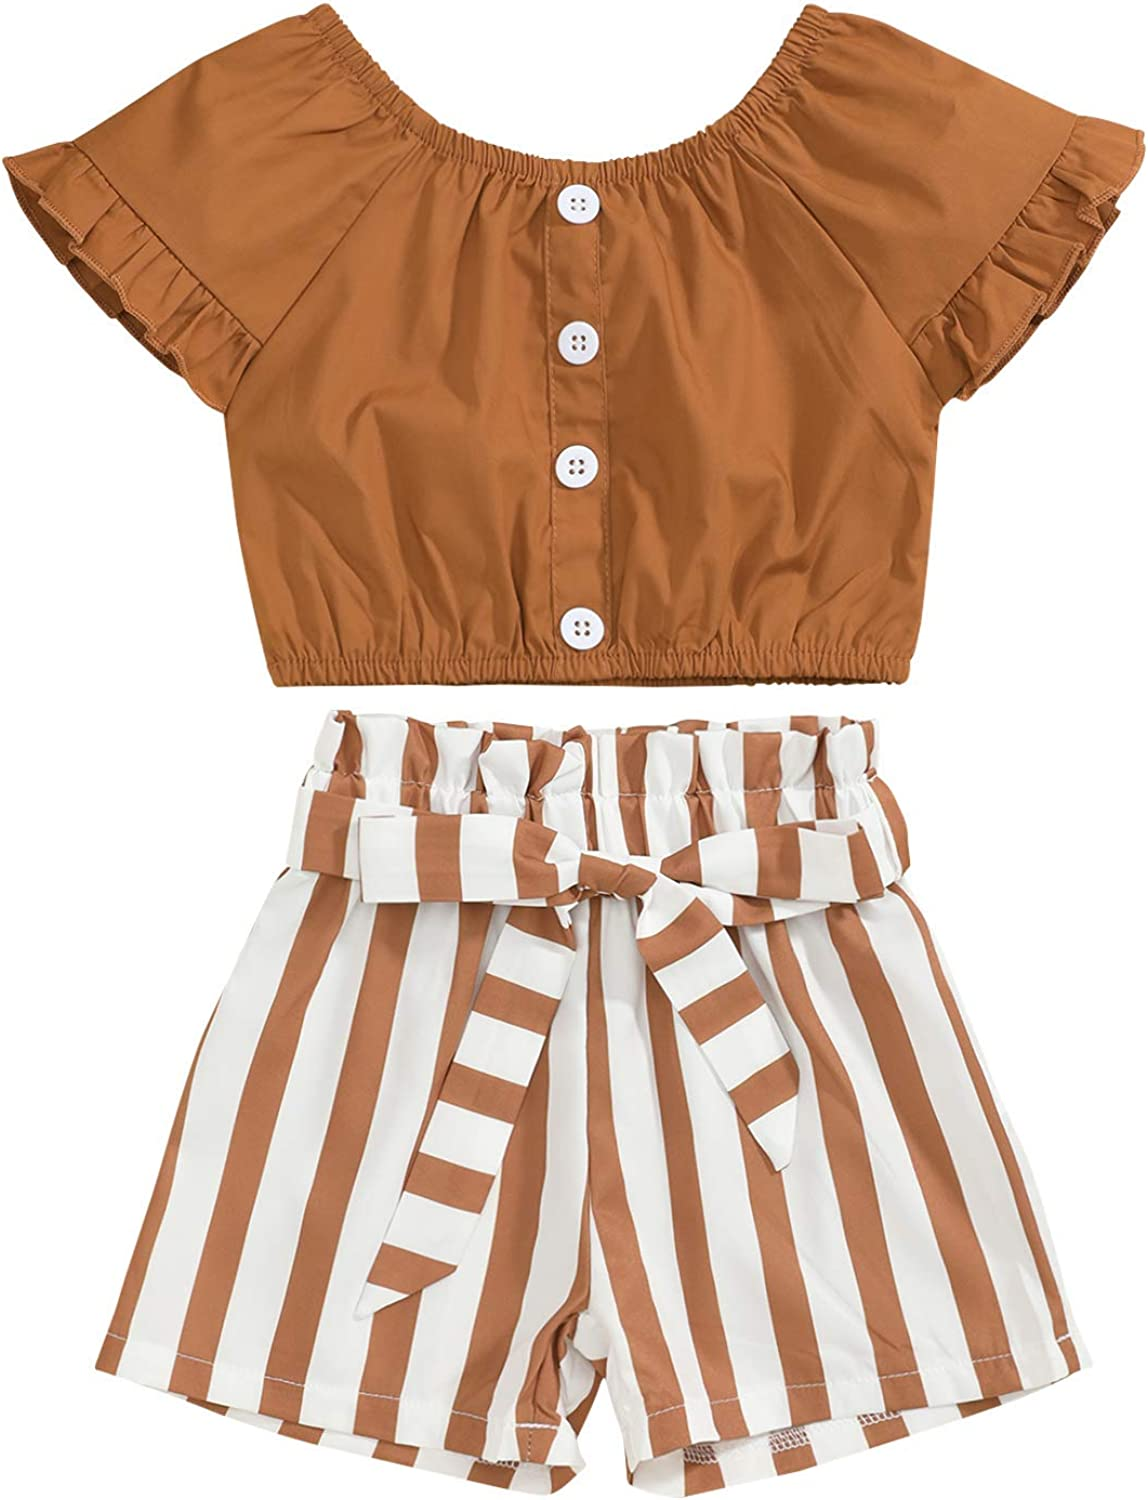 Toddler Kids Baby Girl Clothes Outfit Set Ruffle Sleeve Solid Color Tops Striped Shorts Summer Clothes for Little Girl